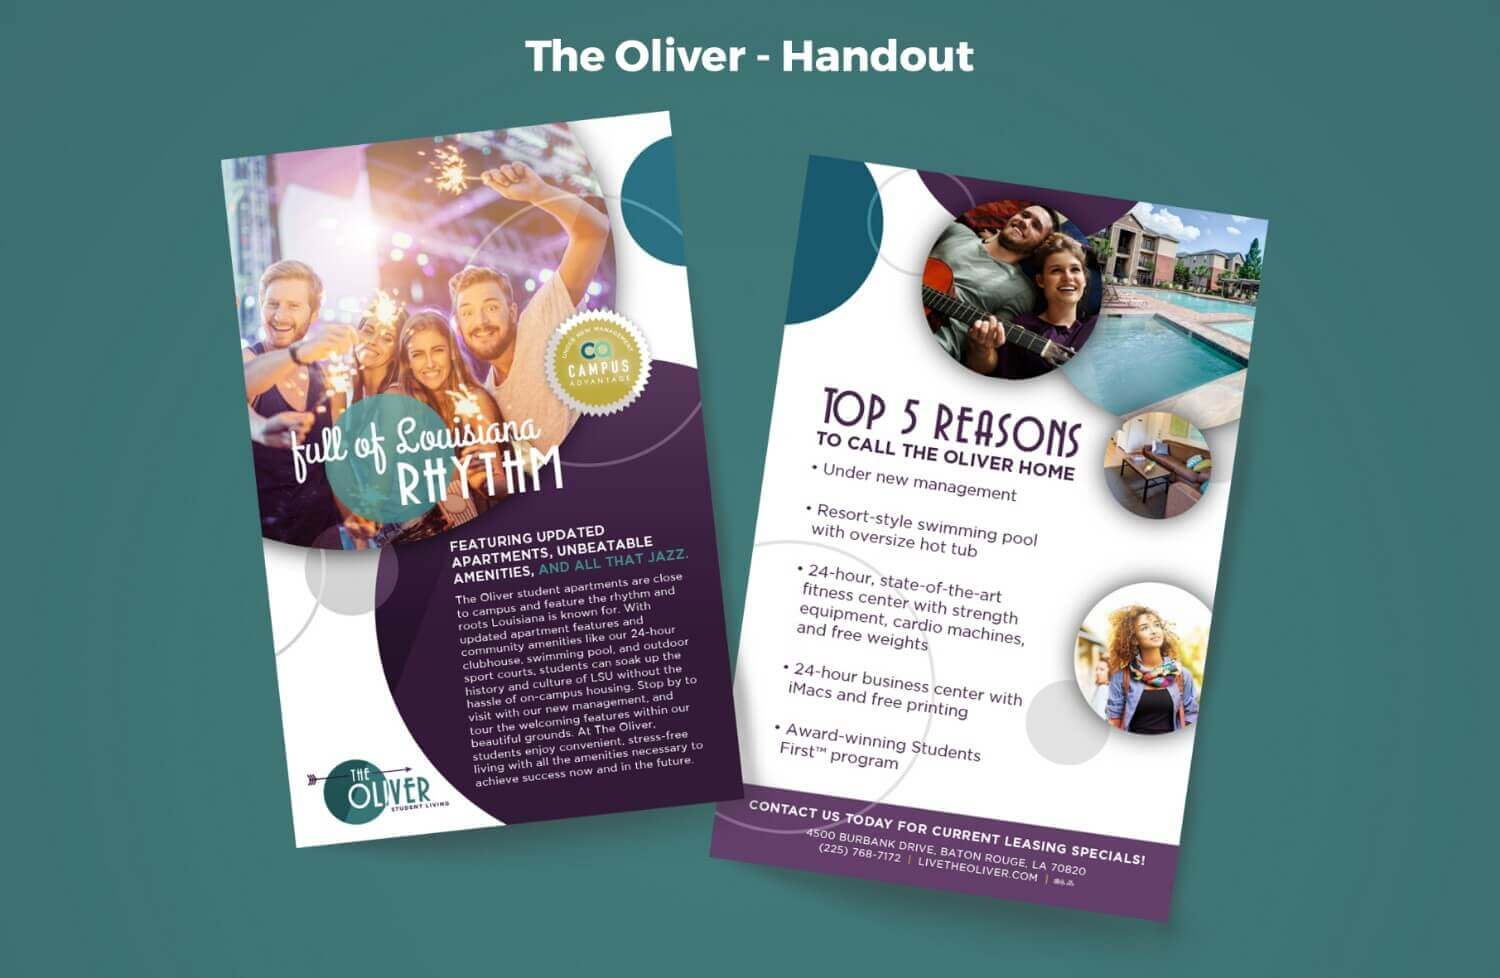 The Oliver Handout